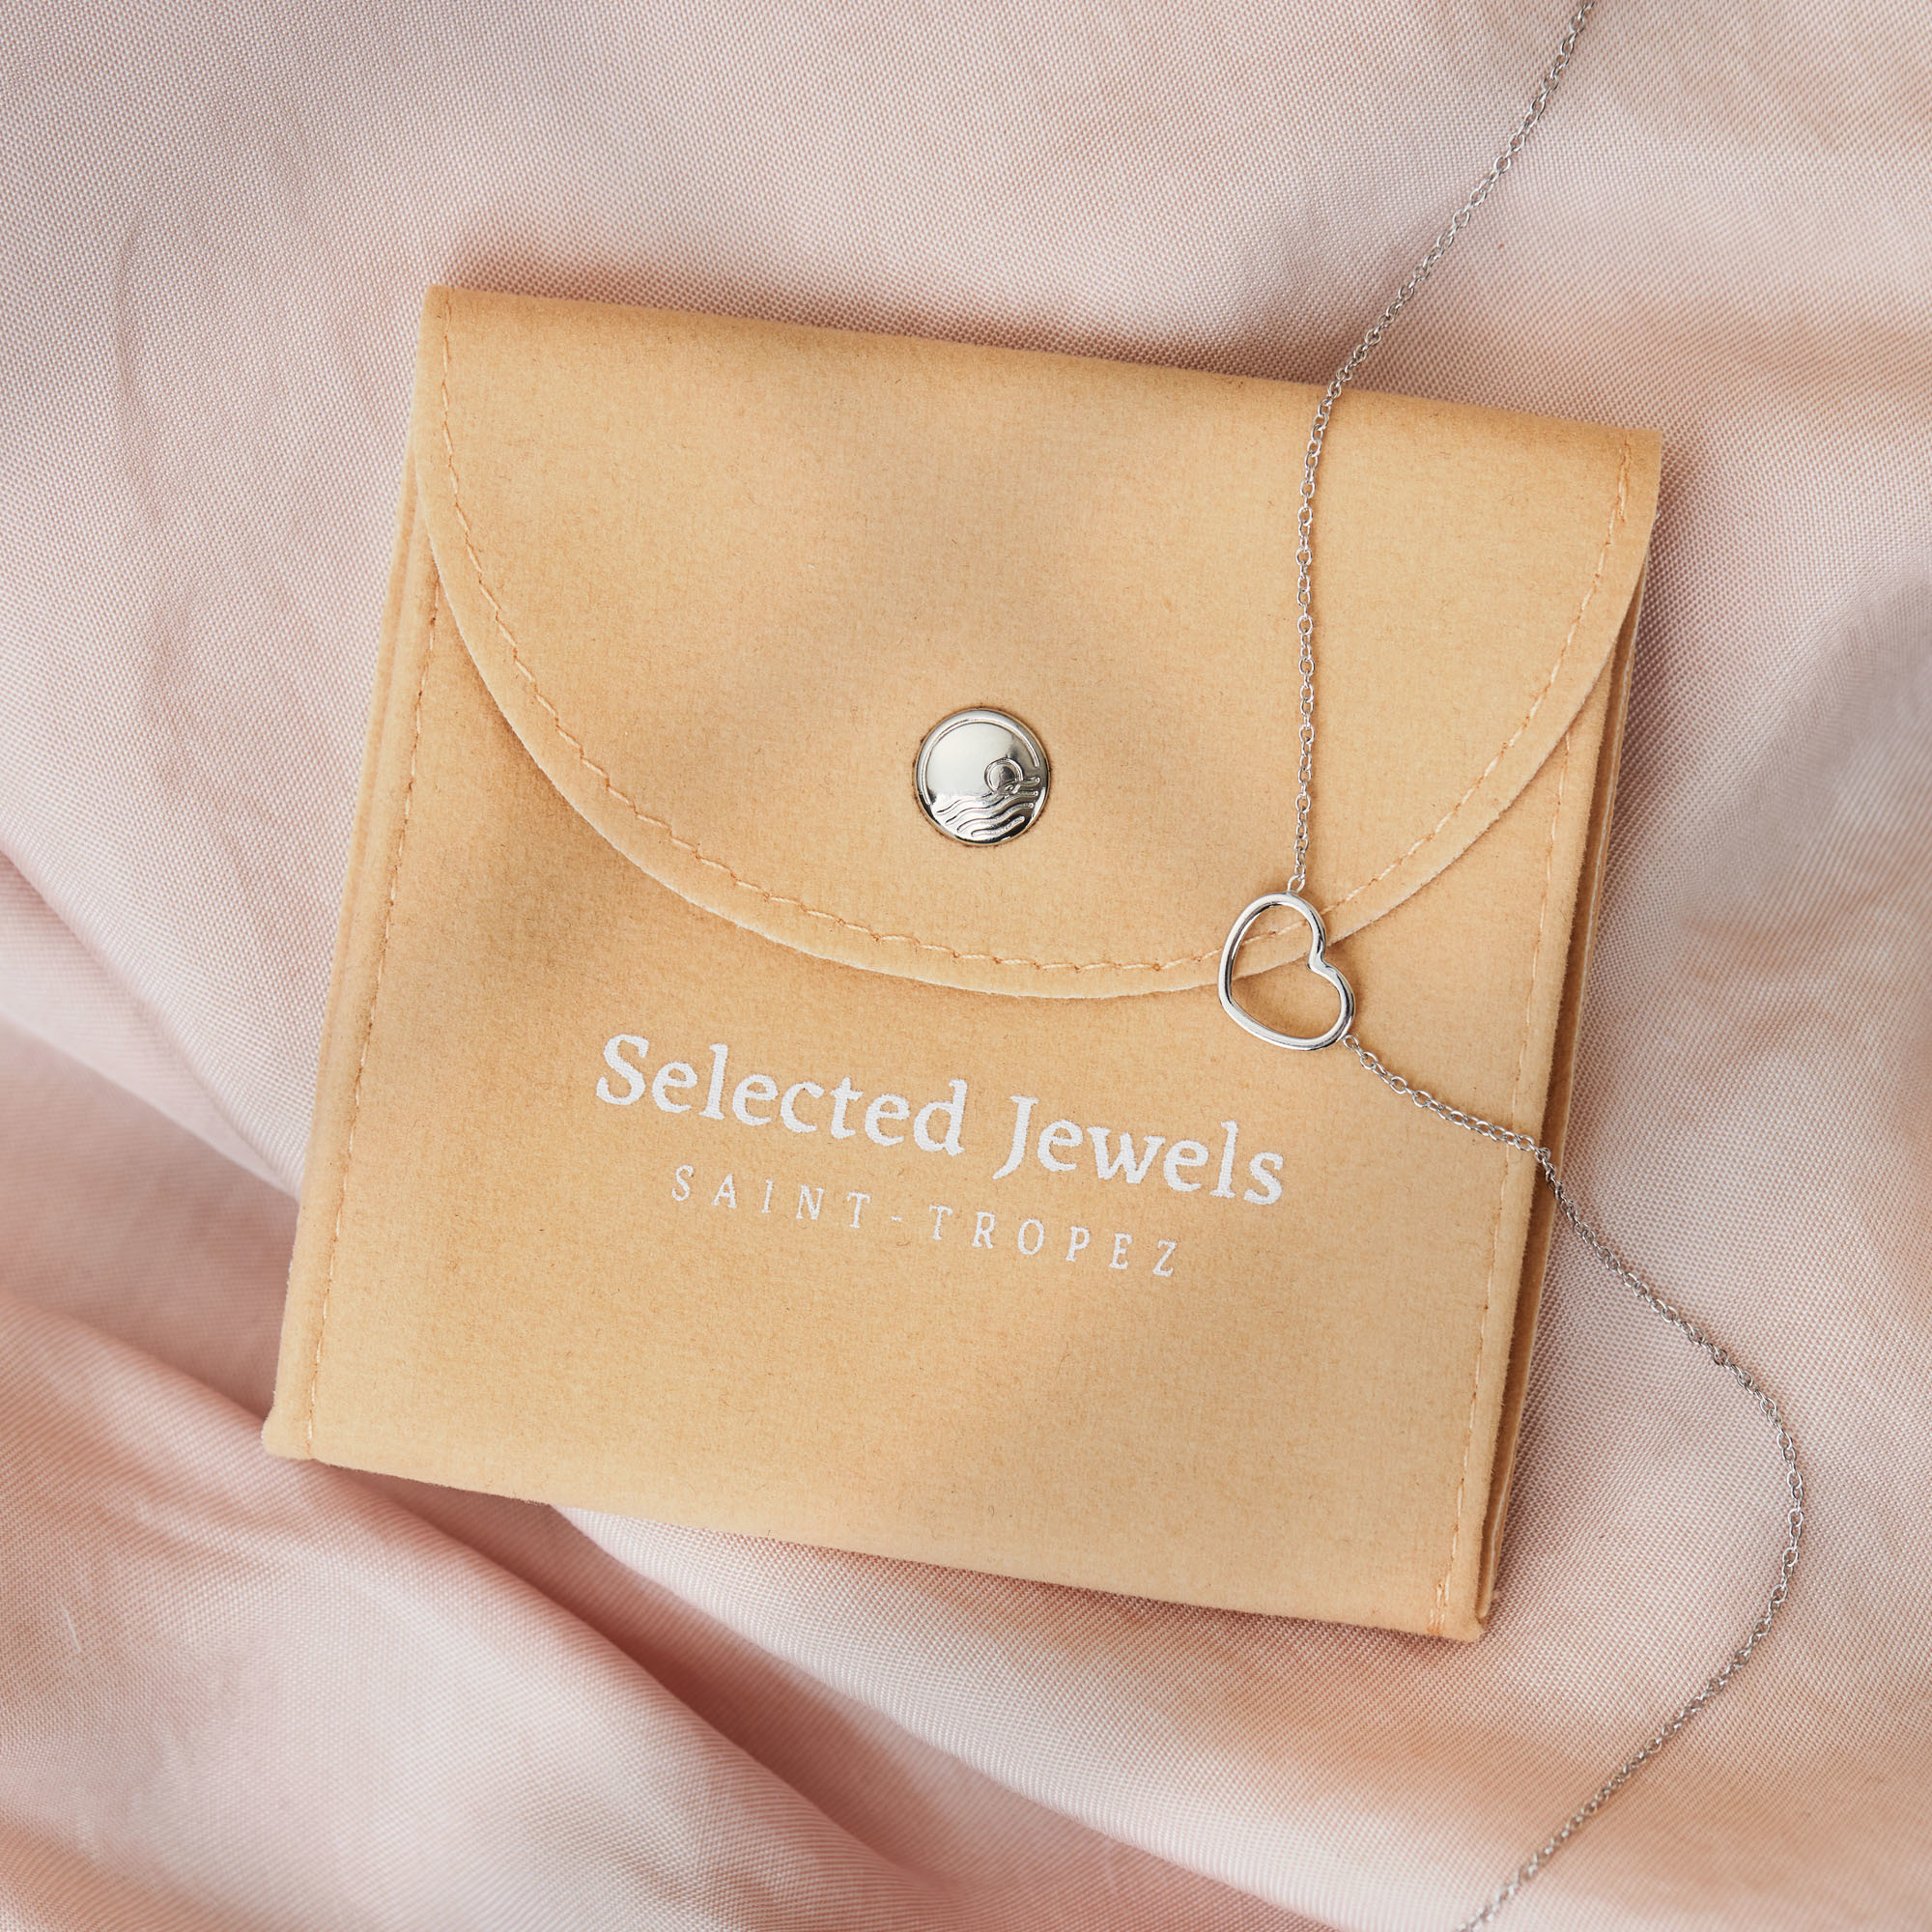 Selected Jewels Emma Vieve 925 Sterling Silber Kette